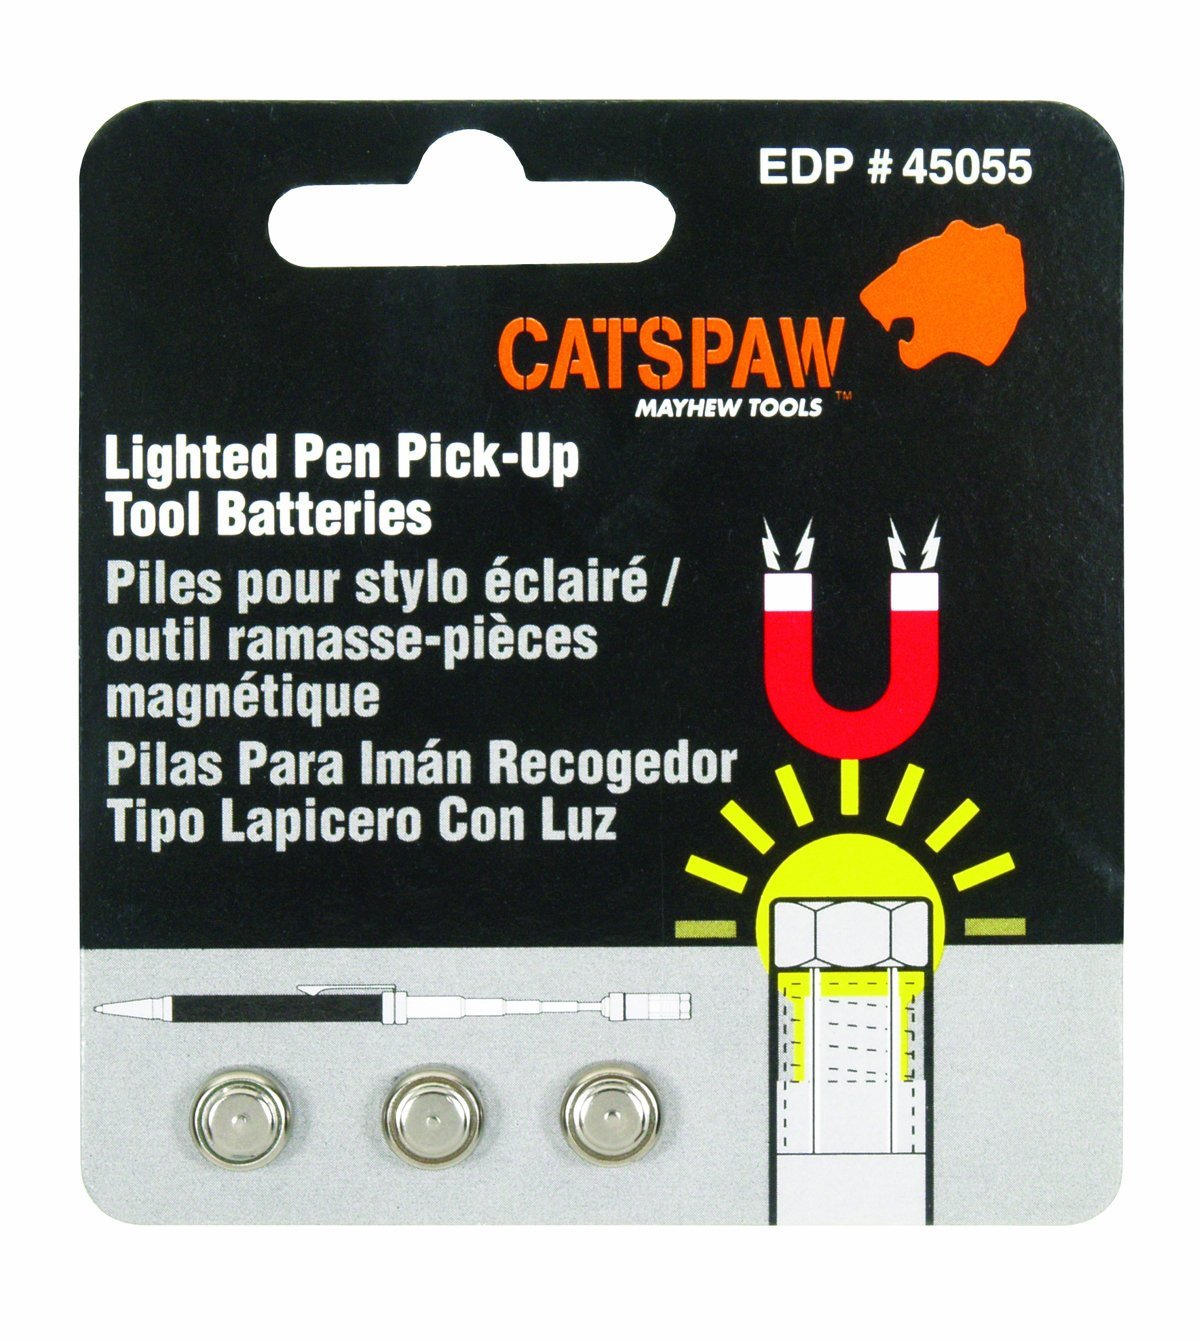 Mayhew Select 45055 Cats Paw Battery Pack for Lighted Pen Pick Up Tool - Led Household Light Bulbs - Amazon.com